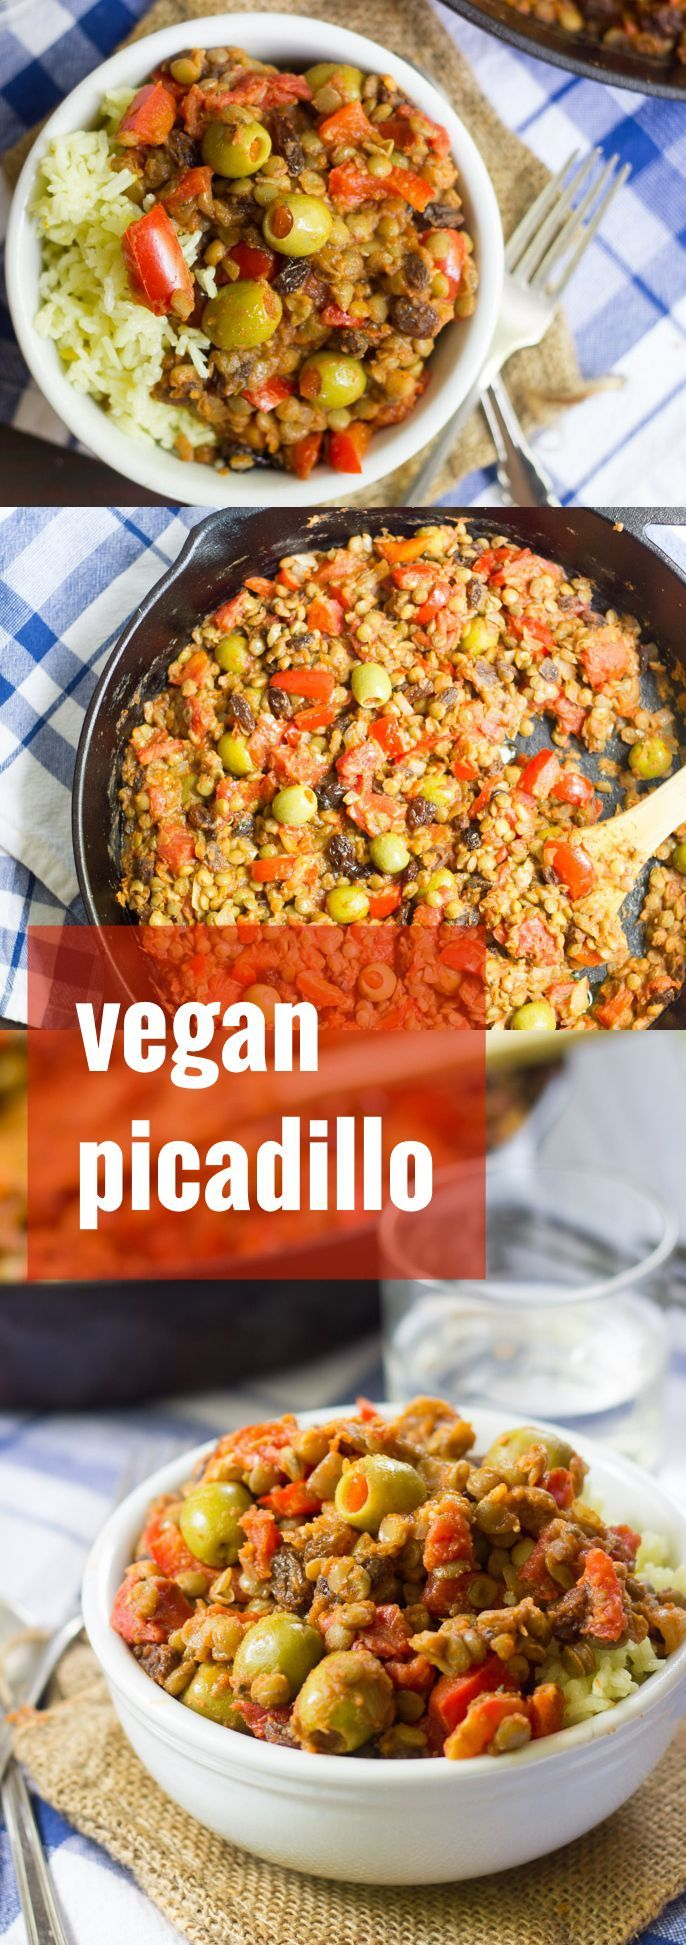 This vegan picadillo is made with spiced lentils simmered up with juicy tomatoes, bell peppers, sweet raisins and pimento-stuffed green olives. Serve over rice for a cozy, delicious and healthy meal!